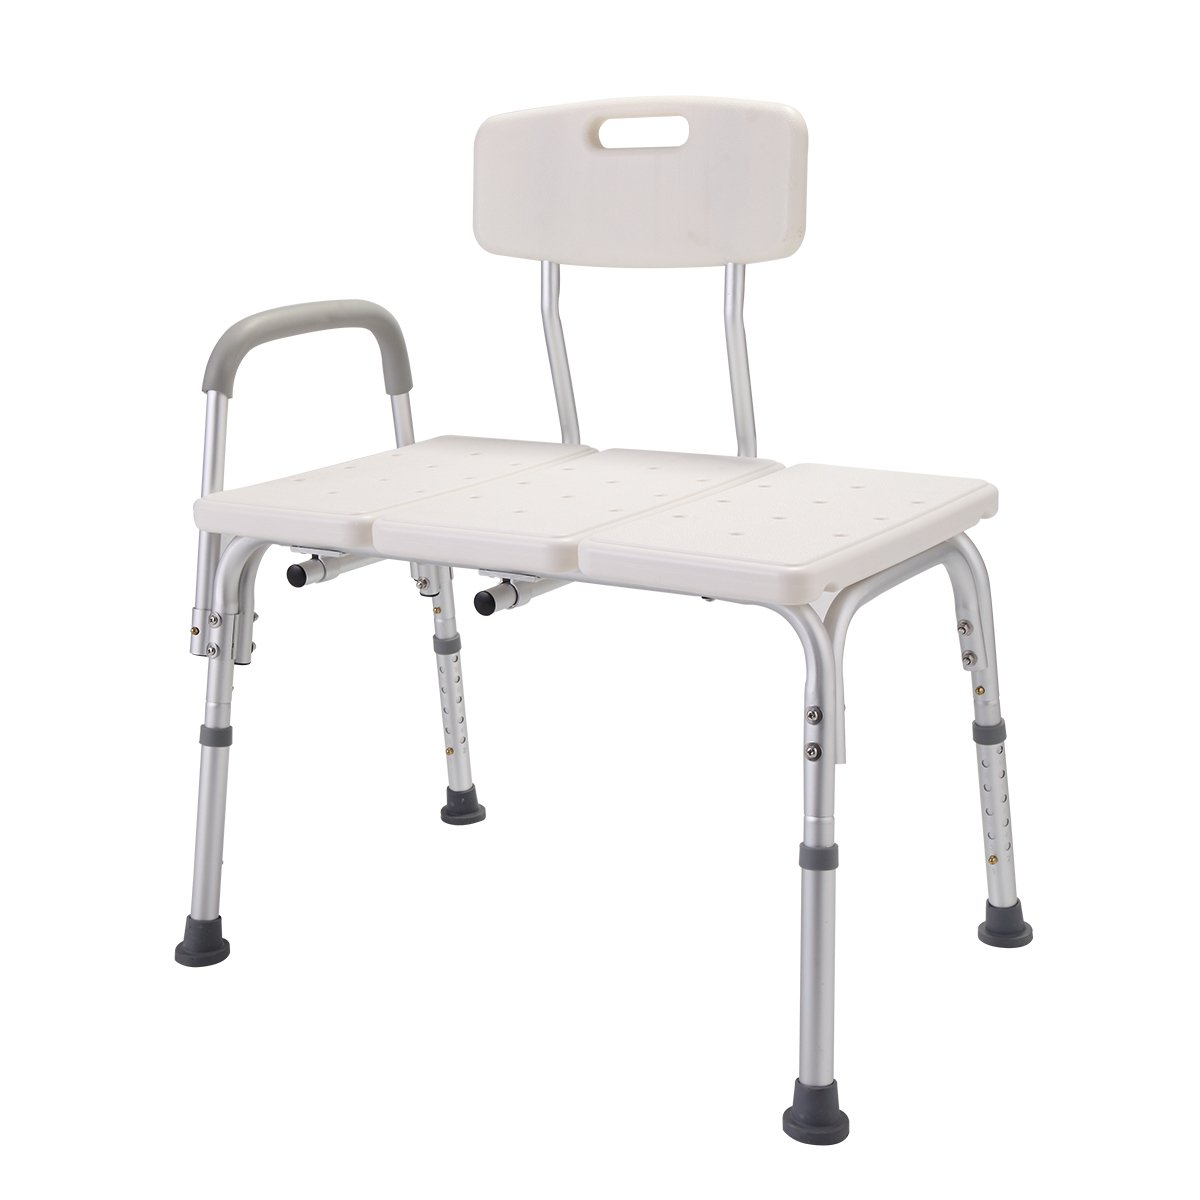 Tobbi 10 Height Adjustable Medical Shower Chair Bath Tub Bench Stool Seat Back and Arm White